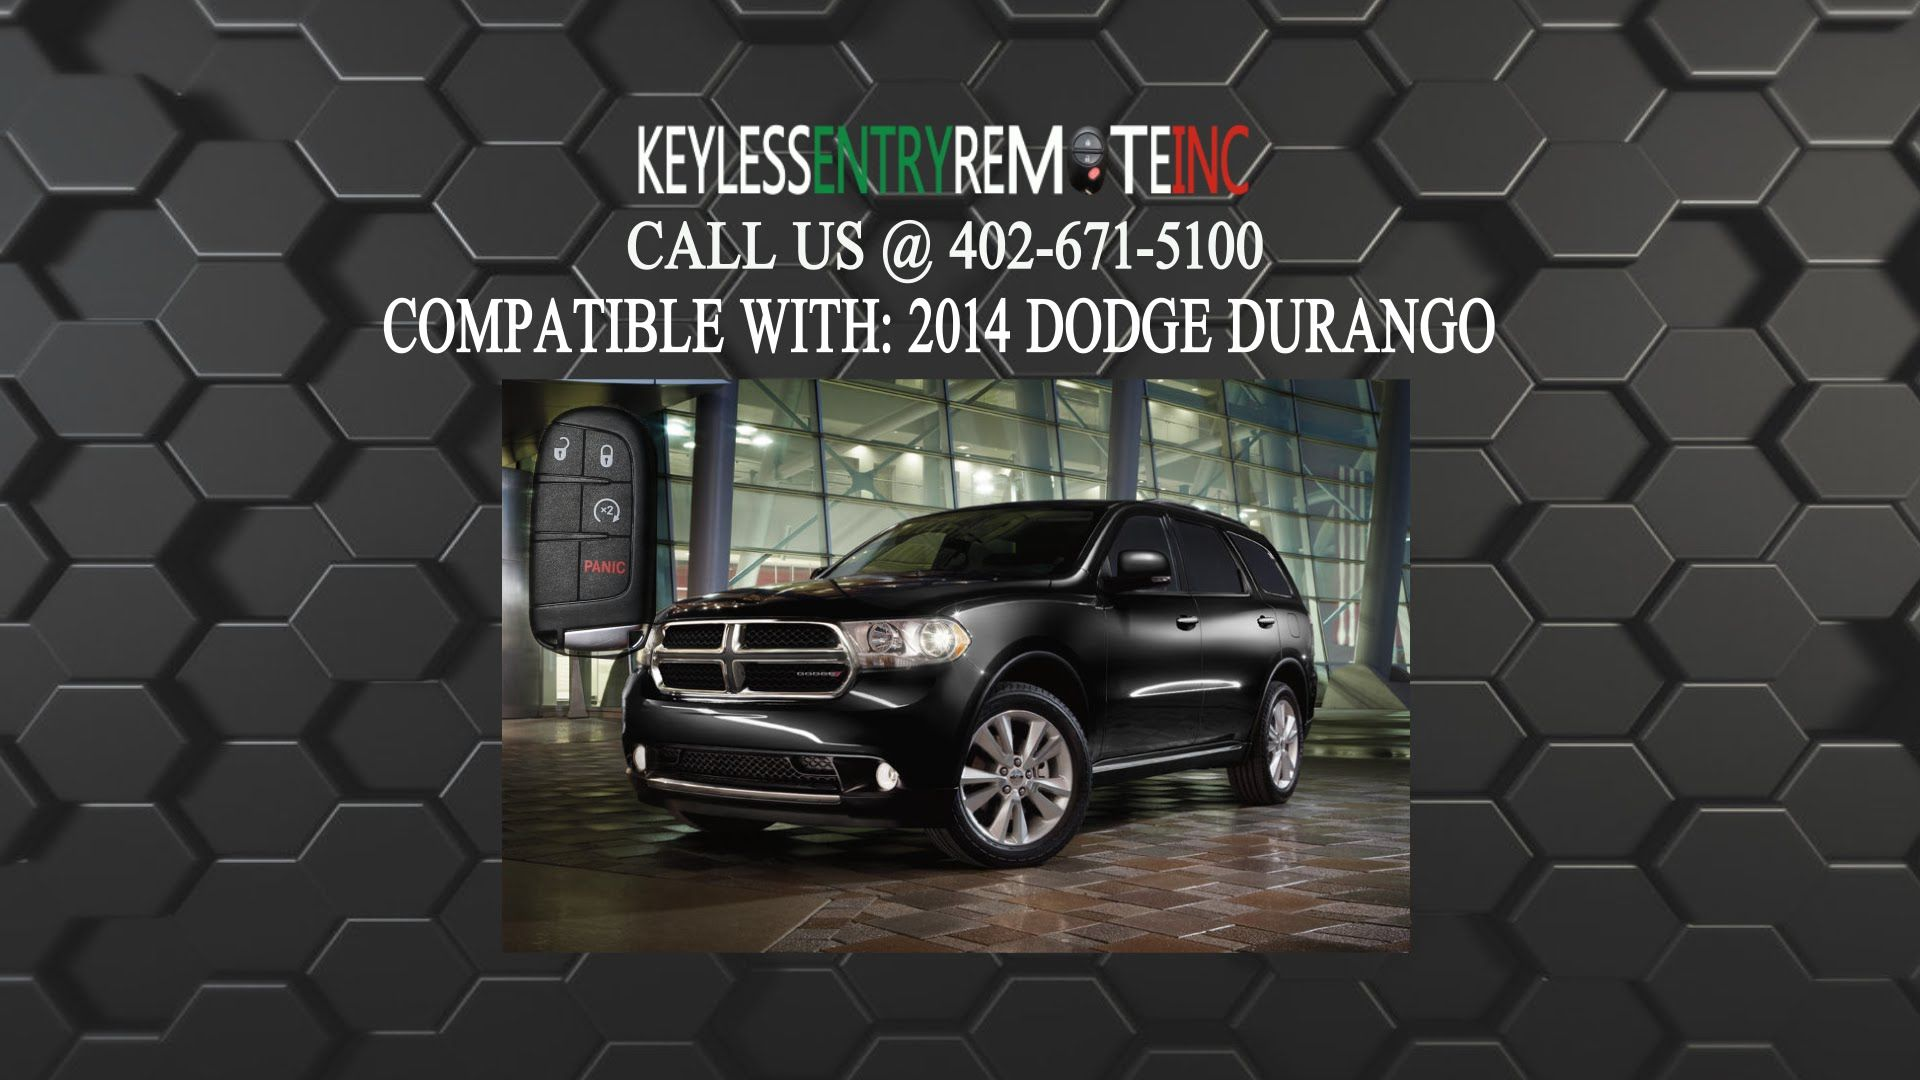 How To Replace A Dodge Durango Key Fob Battery 2017 2016